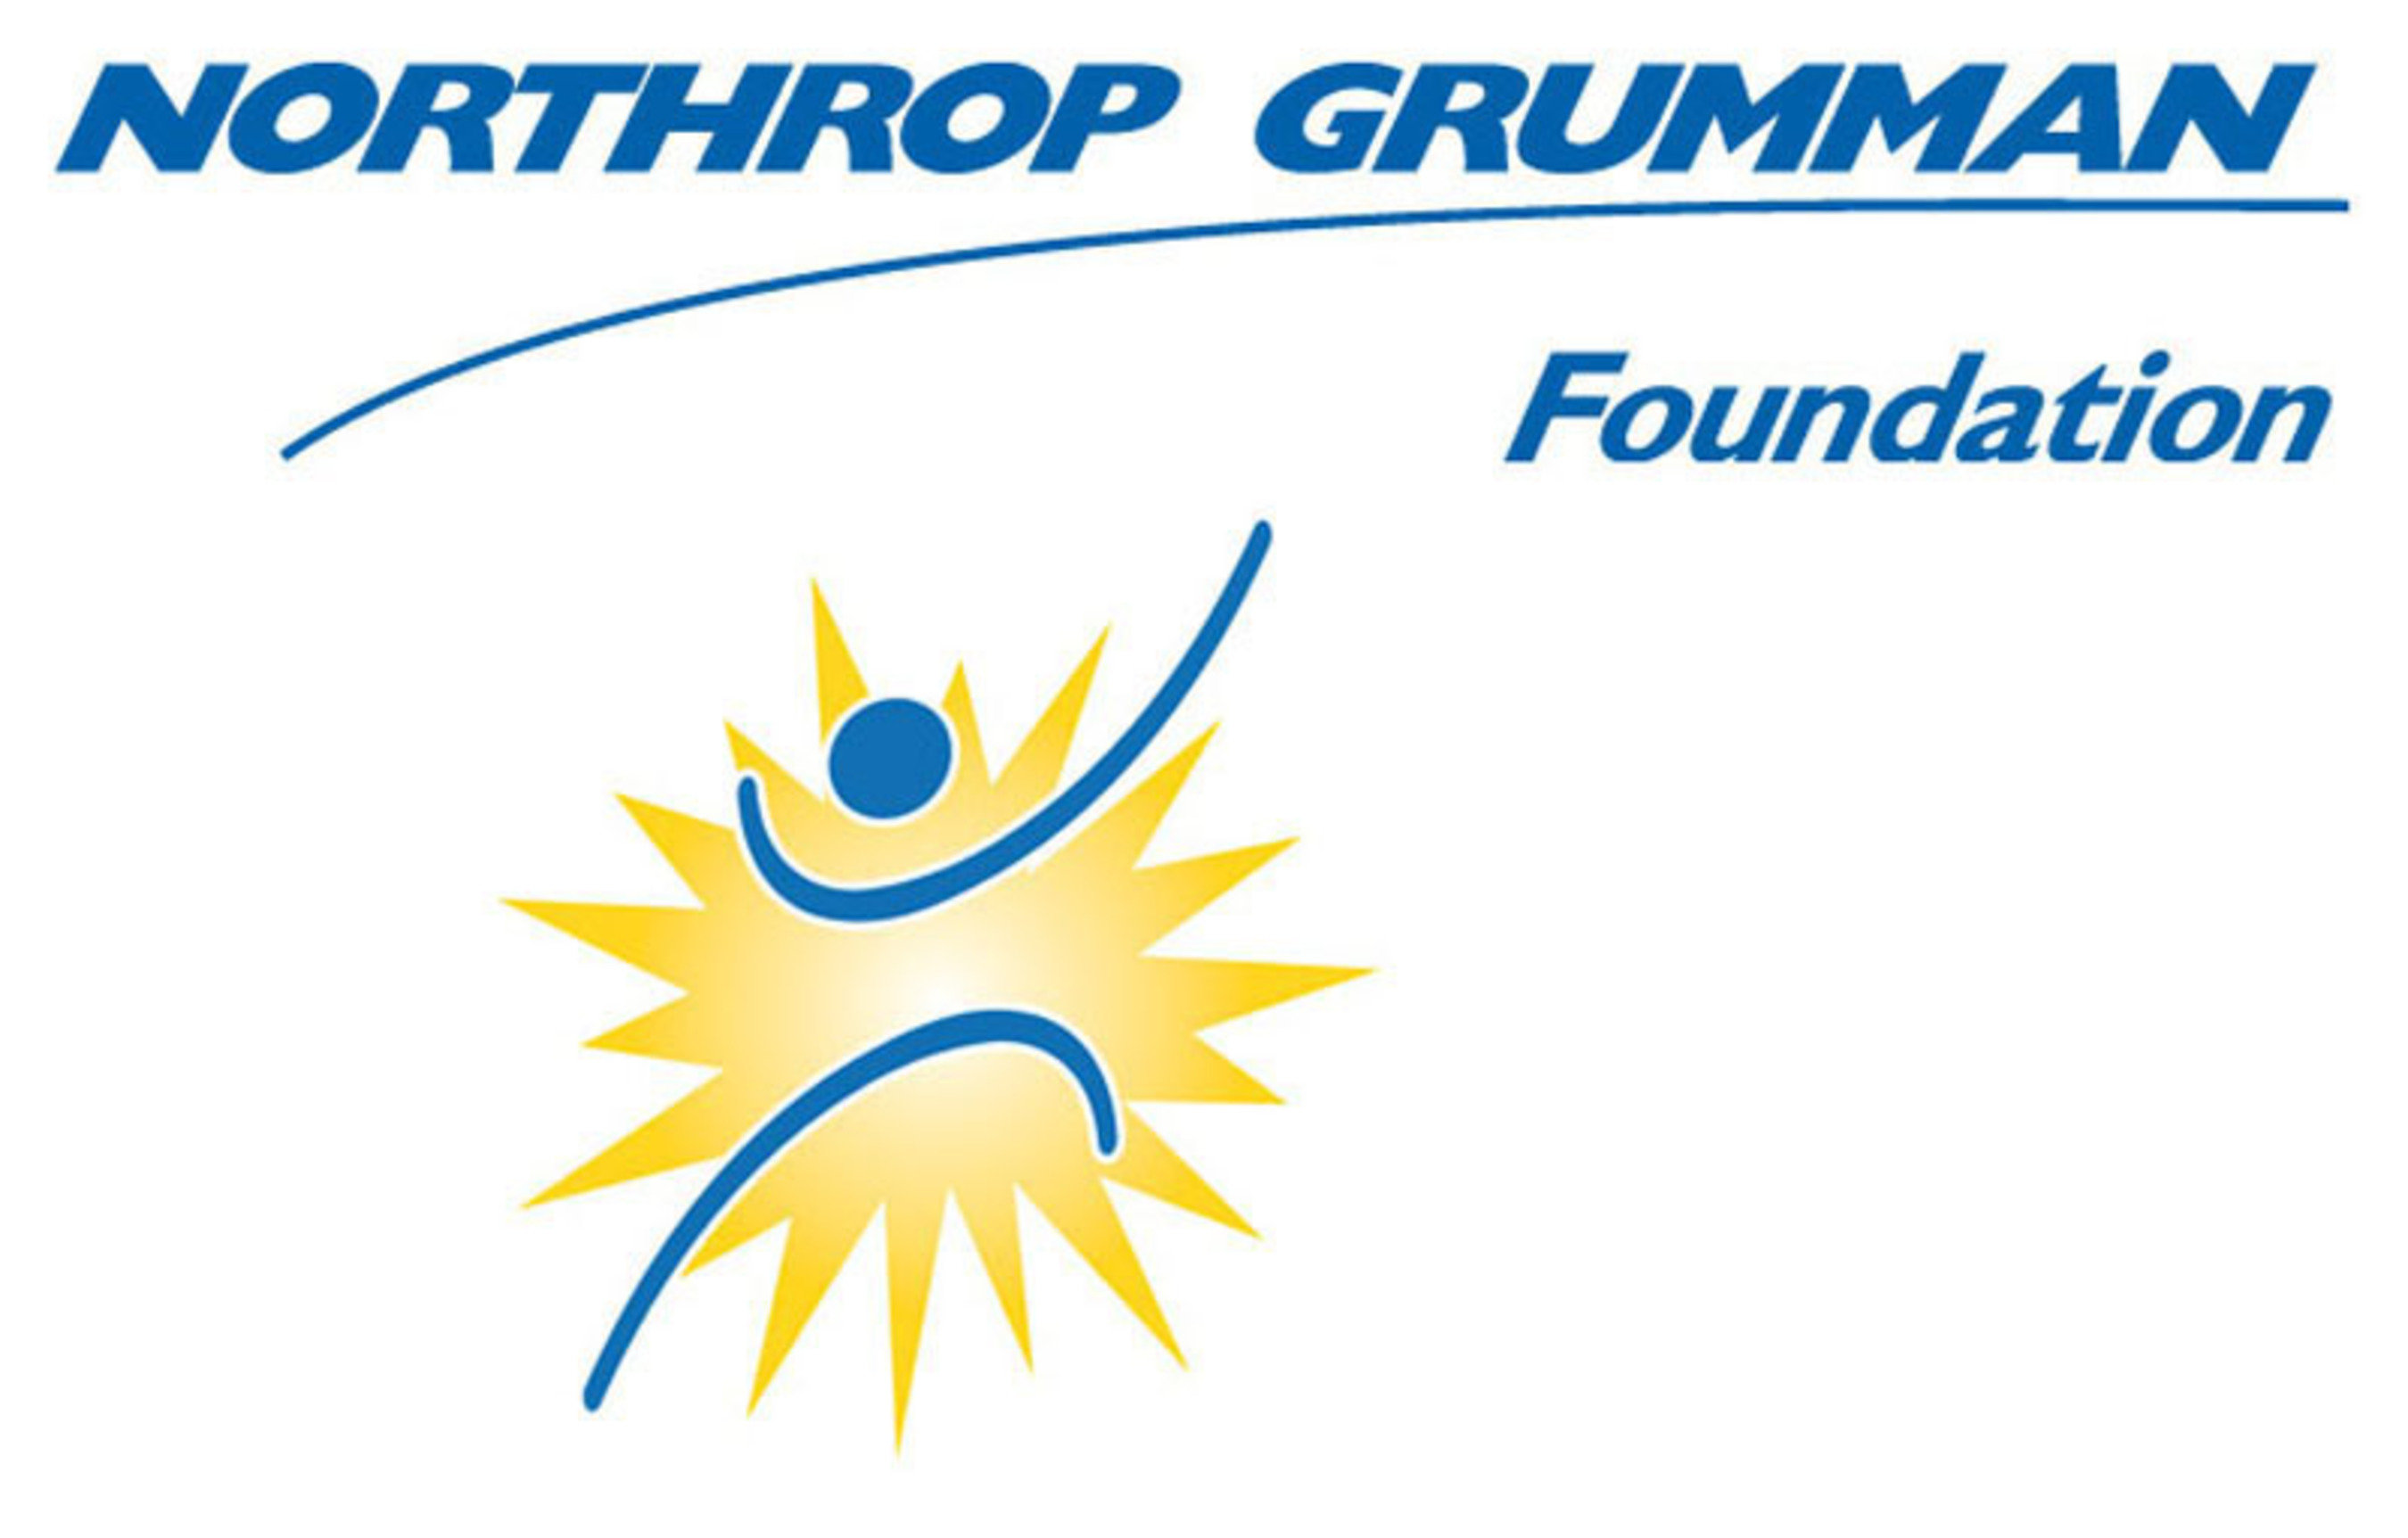 Northrop Grumman Foundation Space Camp' Scholarships Promote Space Exploration and Science, Technology, Engineering and Math